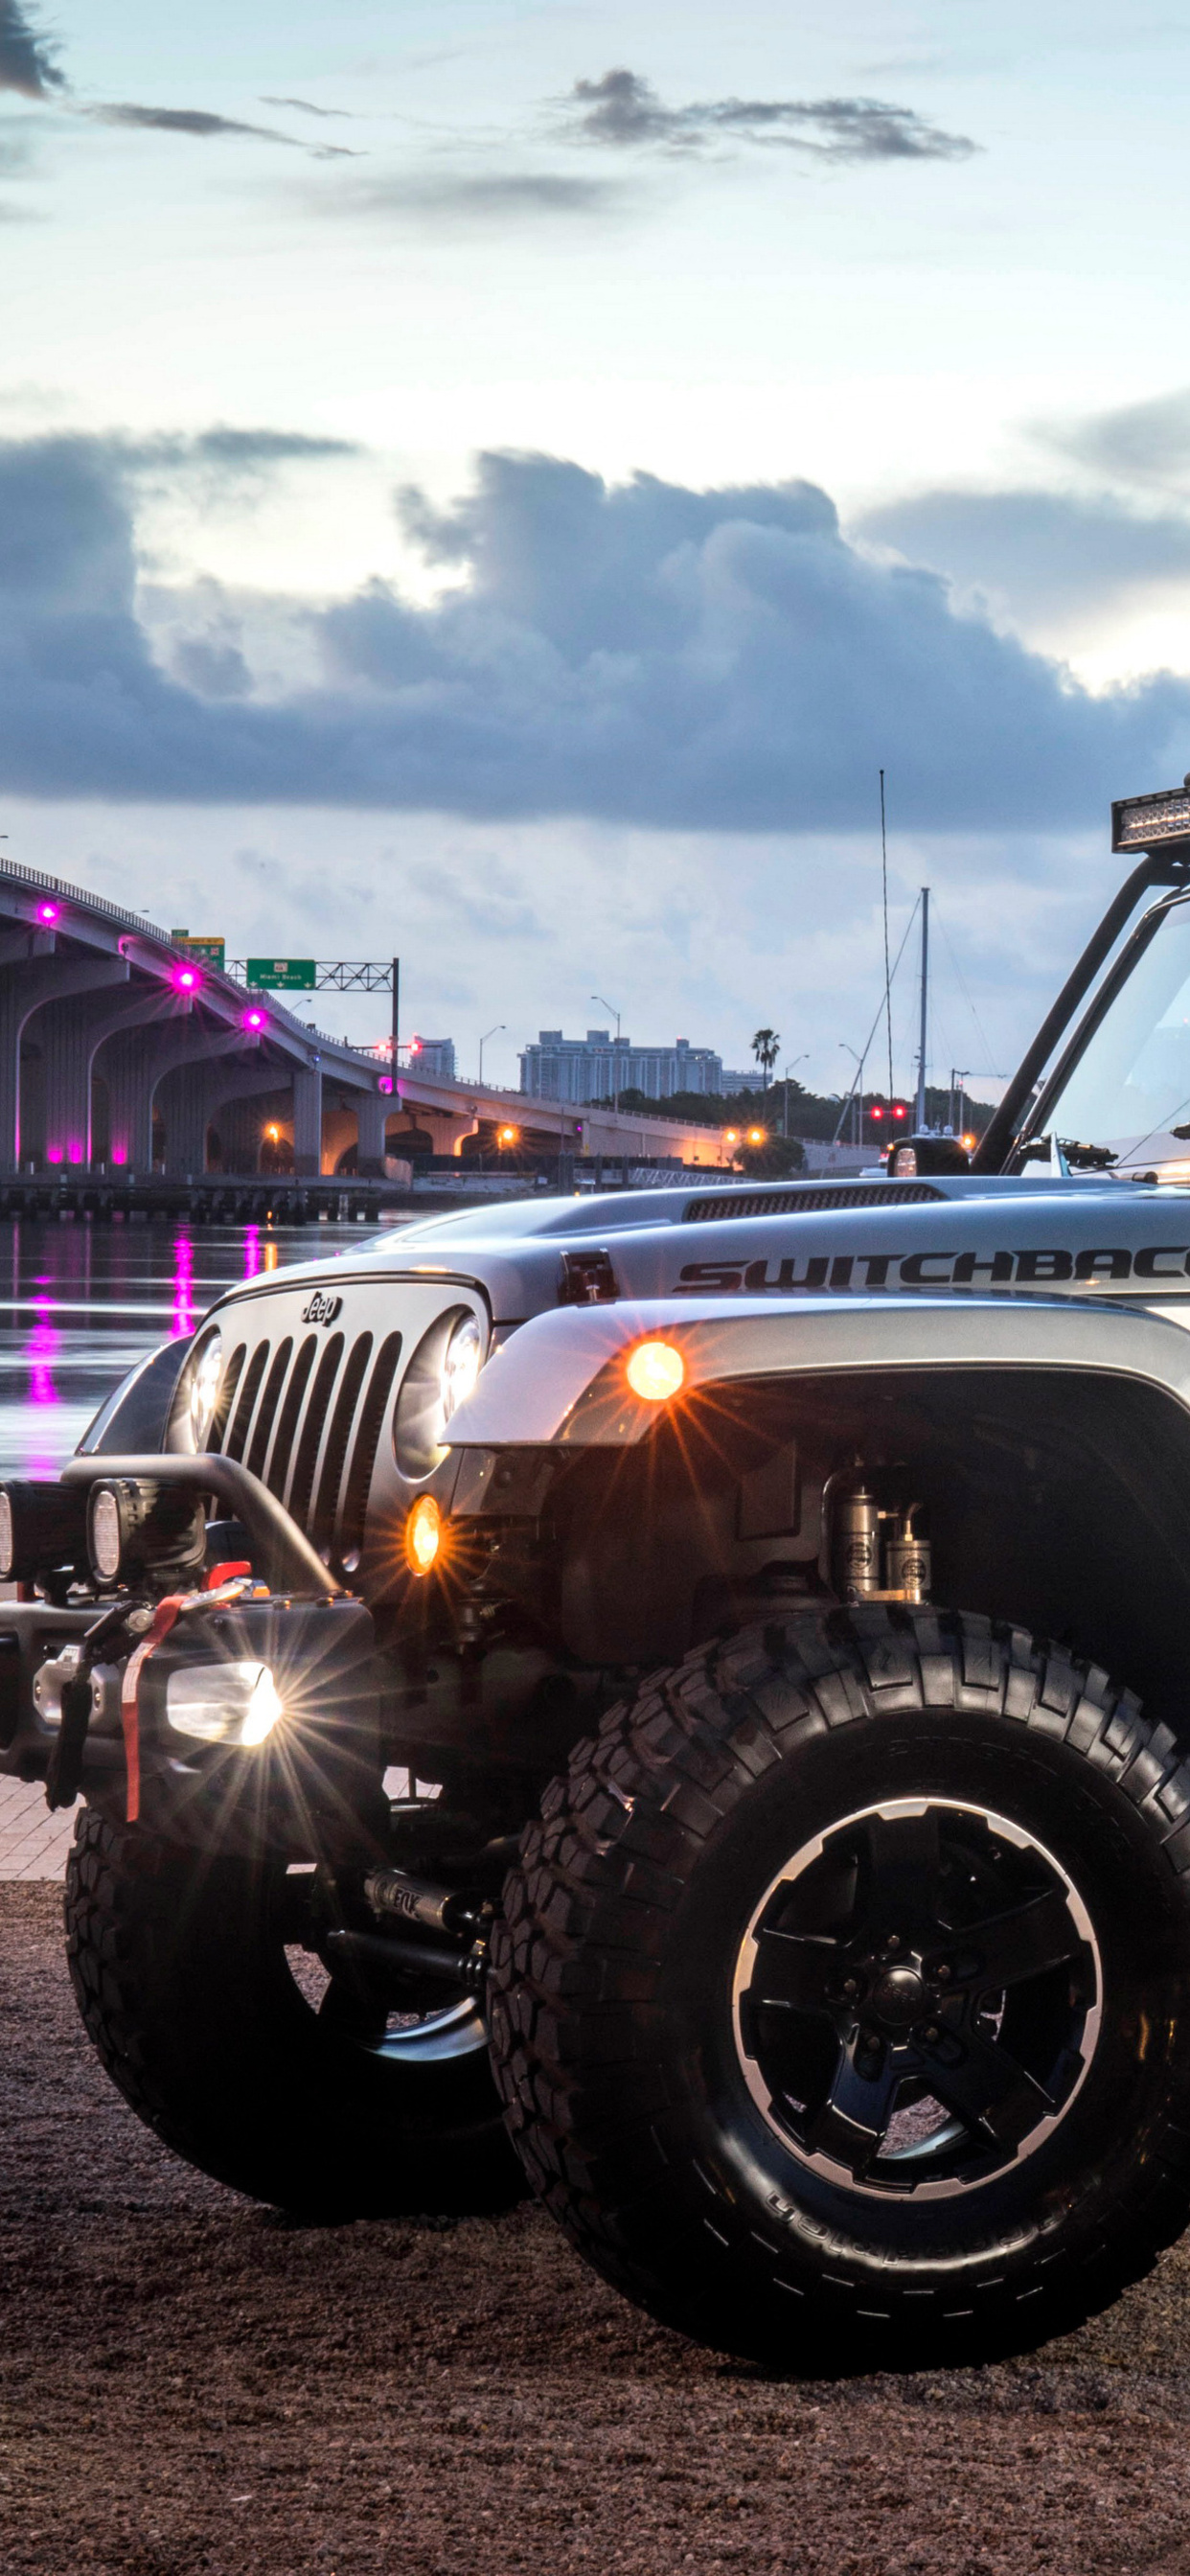 1242x2688 Jeep Switchback Iphone Xs Max Hd 4k Wallpapers